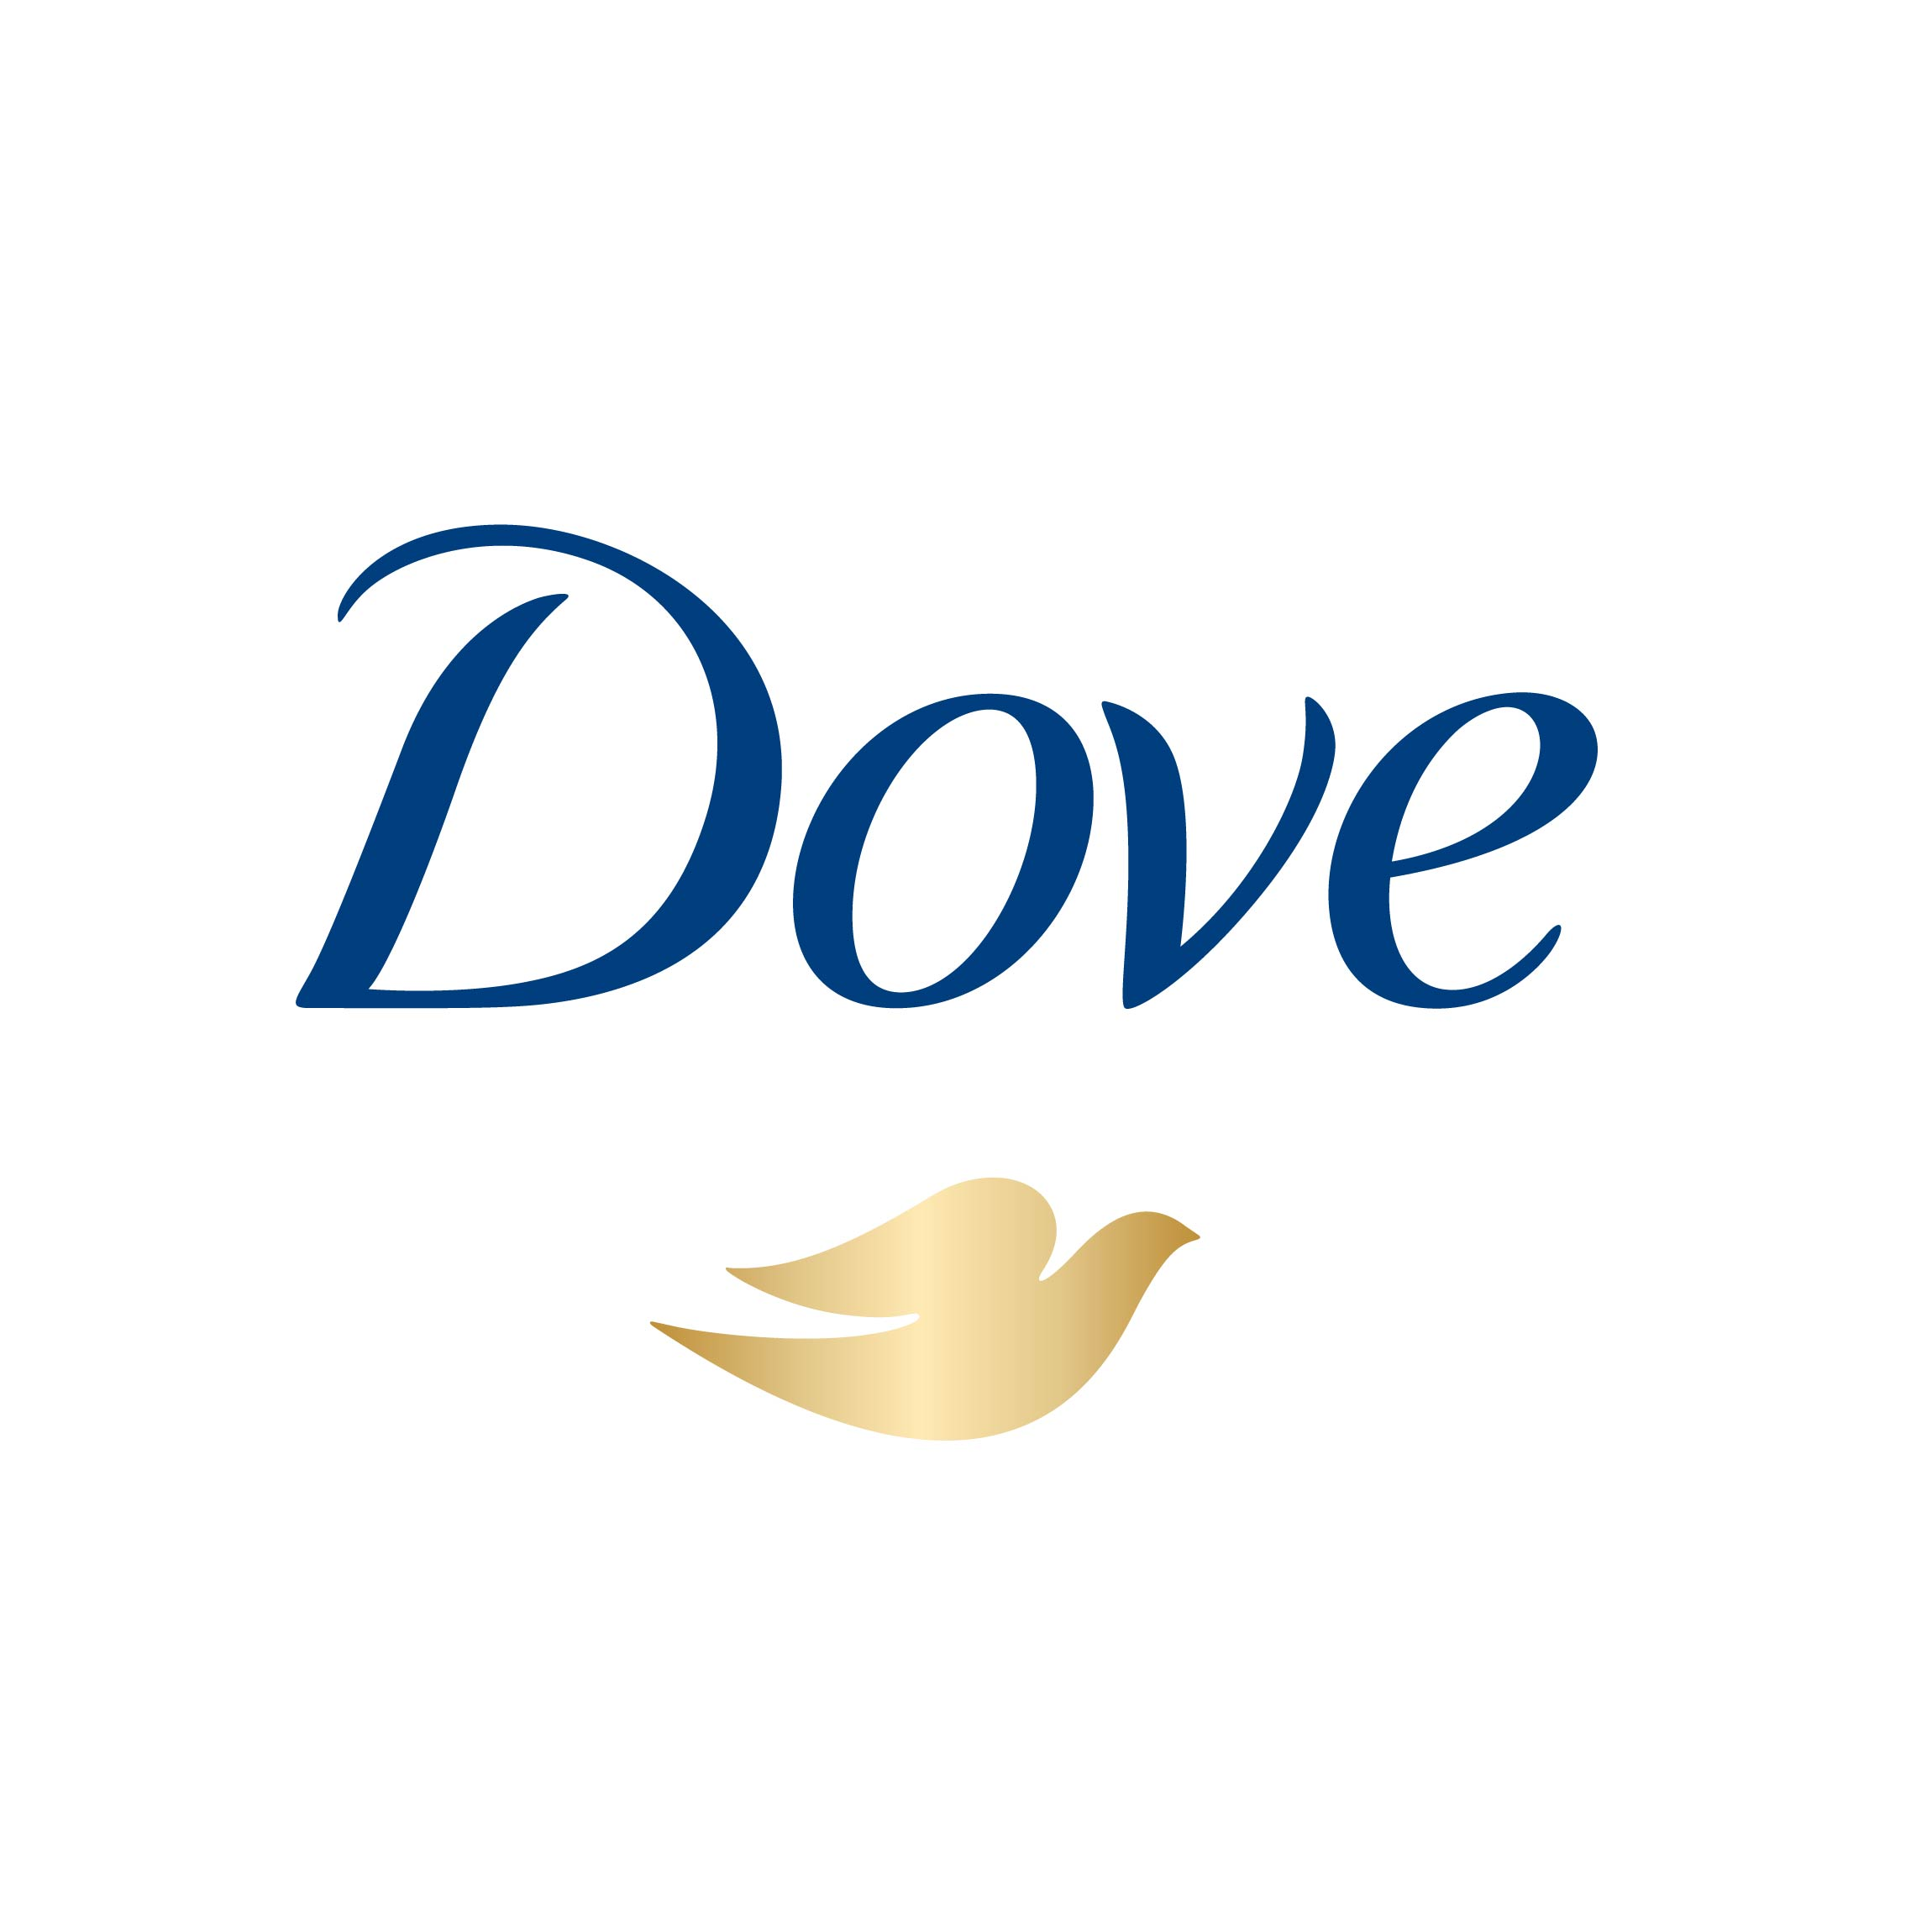 Dove Movement for Self Esteem: Hablemos! Dove Wants to Get the Conversation Started, Our Girls are Listening. #DoveInspired